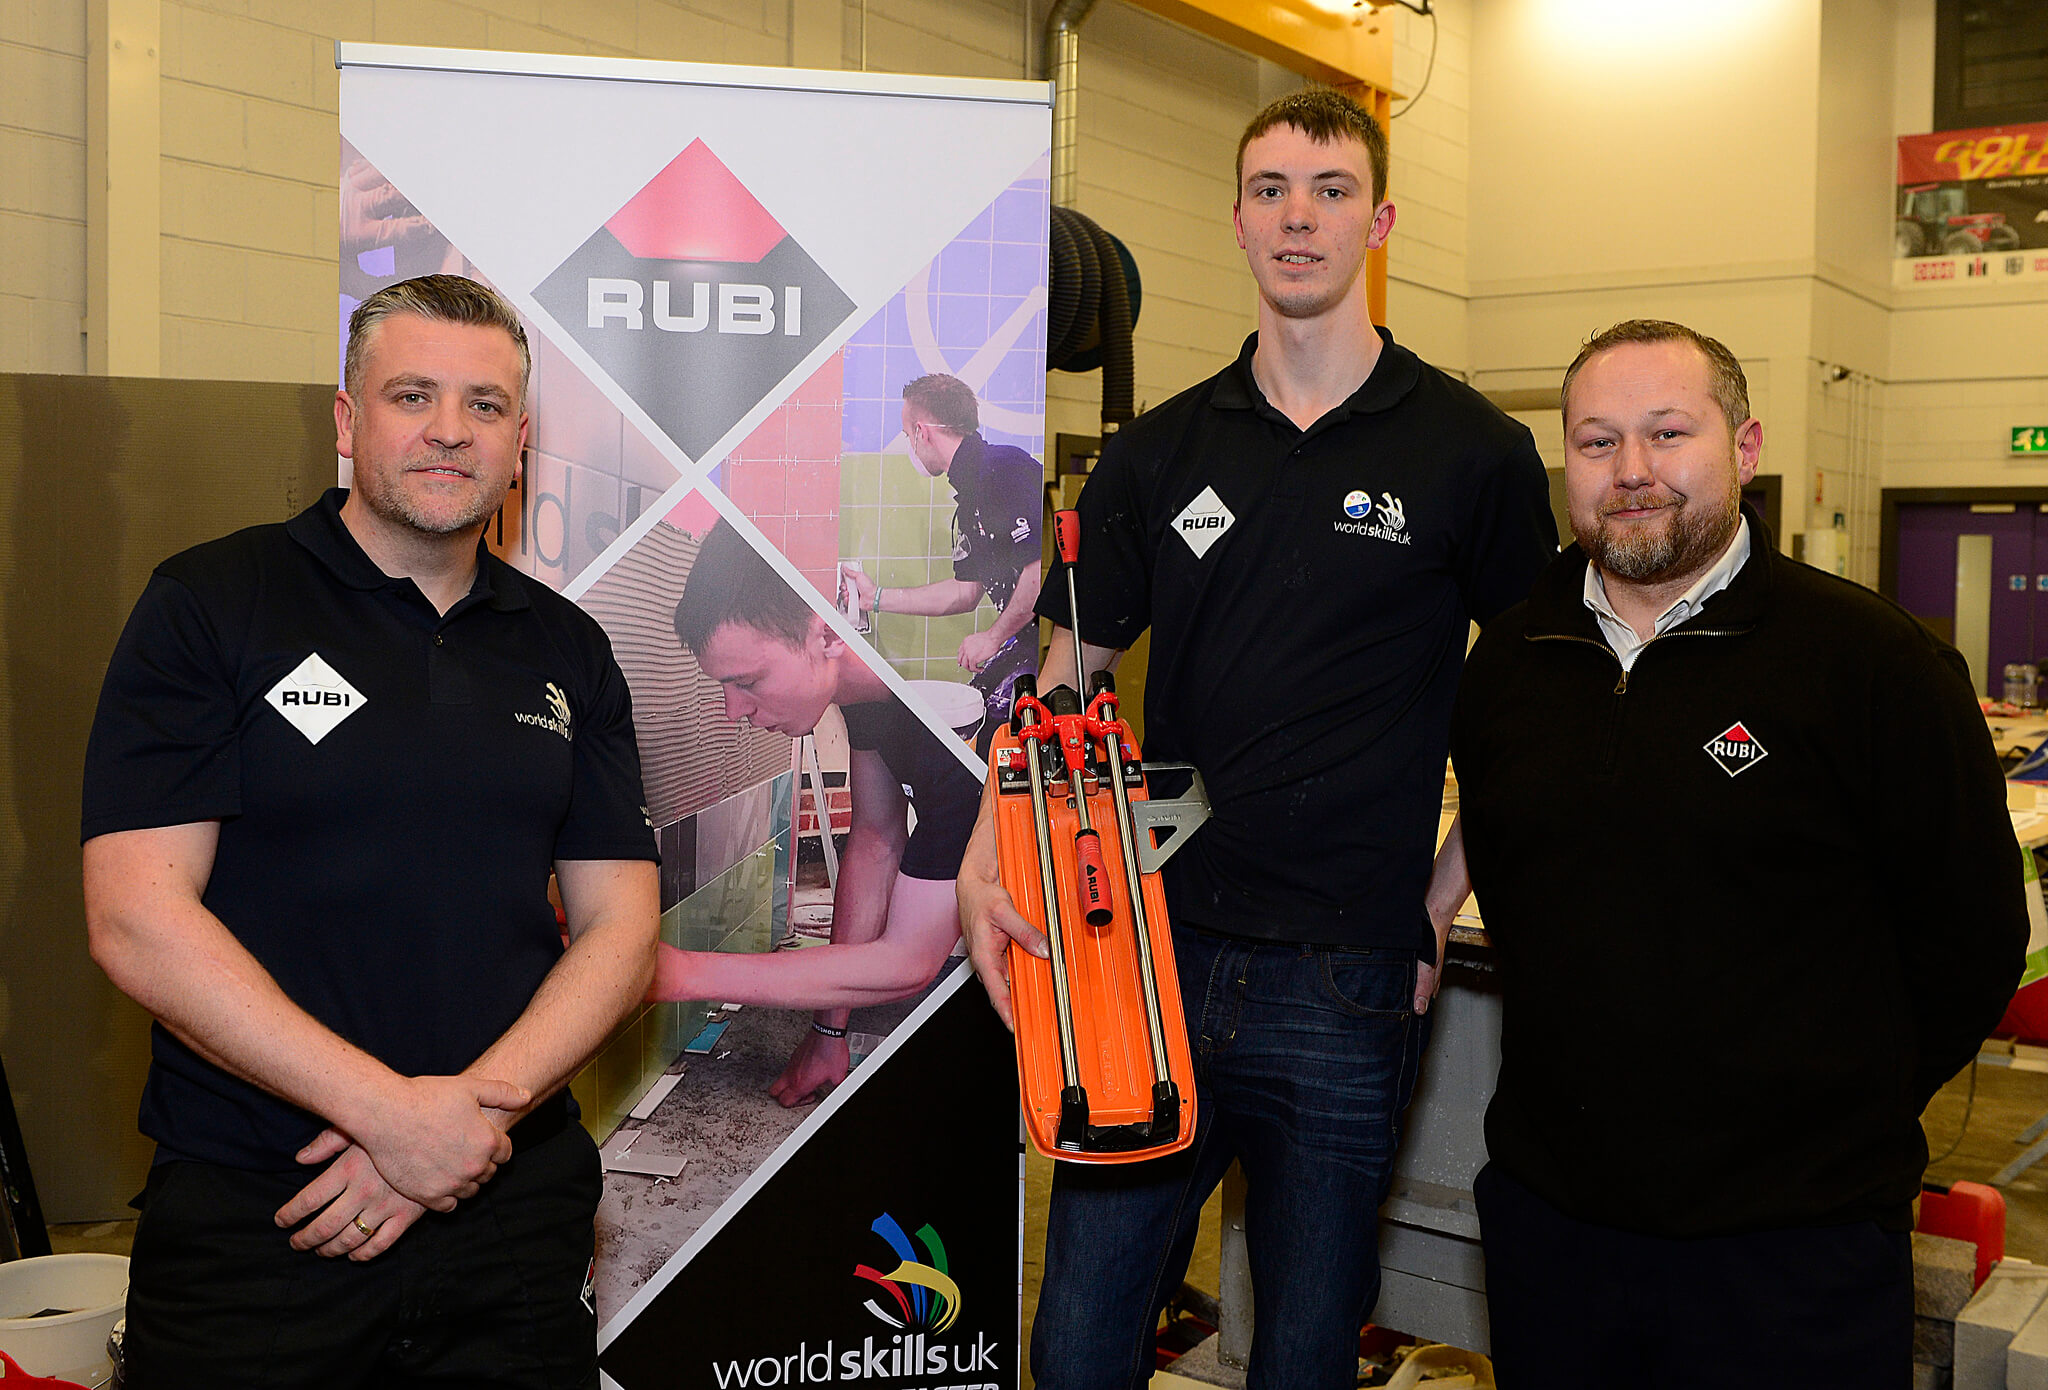 The UK WorldSkills trainer for Wall and Floor Tiling section, Paul Doran, next to Mark Scott and the Sales Rep for RUBI Ireland, Richard Morton.